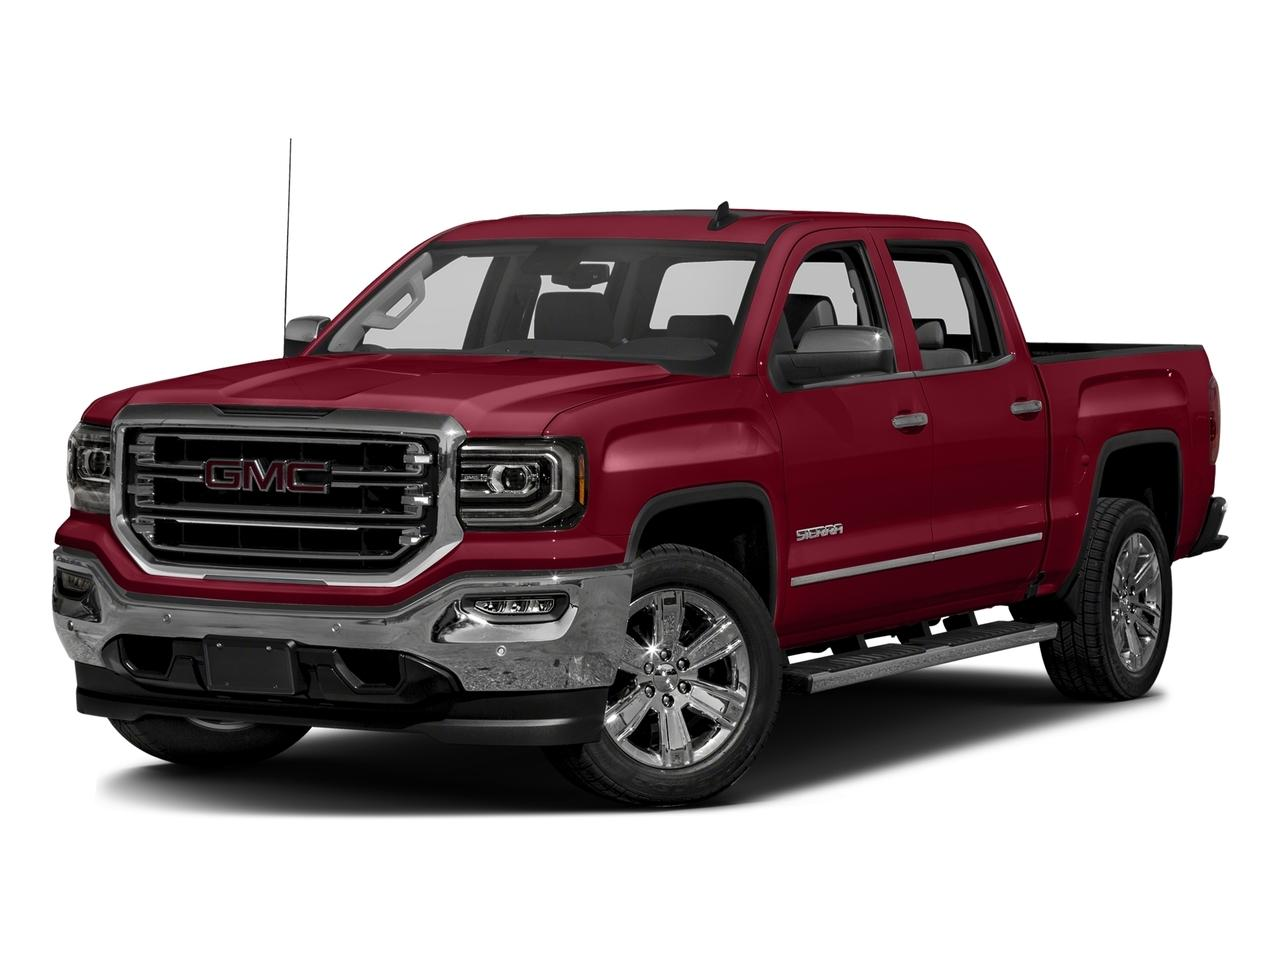 2018 GMC Sierra 1500 Vehicle Photo in Rome, GA 30161